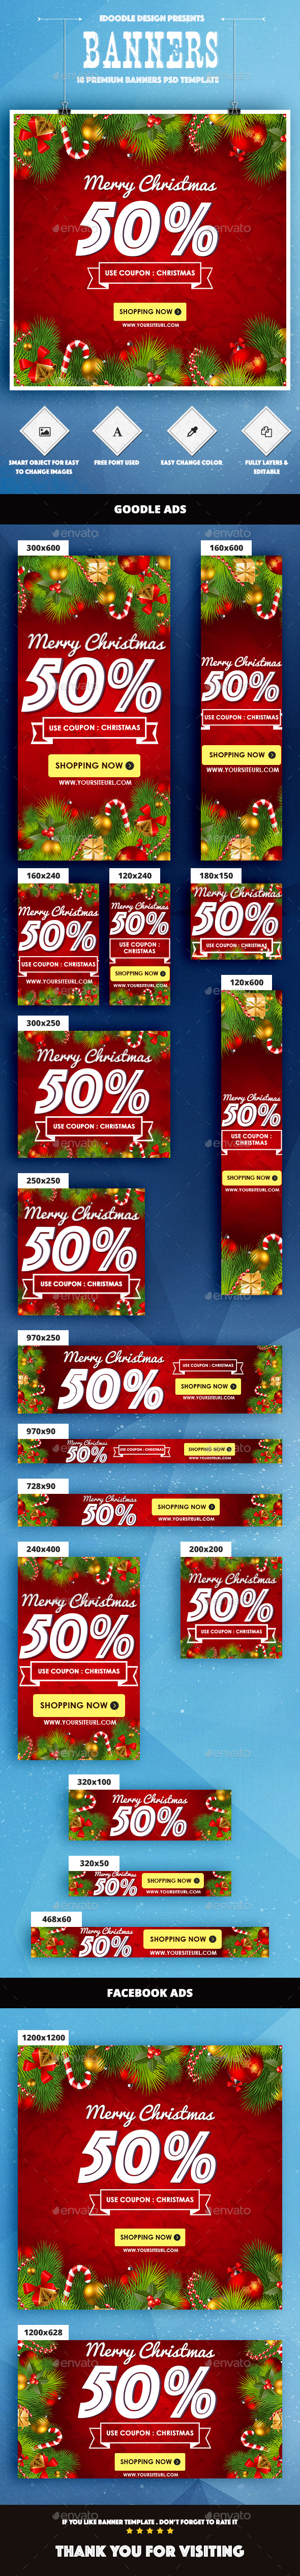 Christmas Banners Ad - Banners & Ads Web Elements